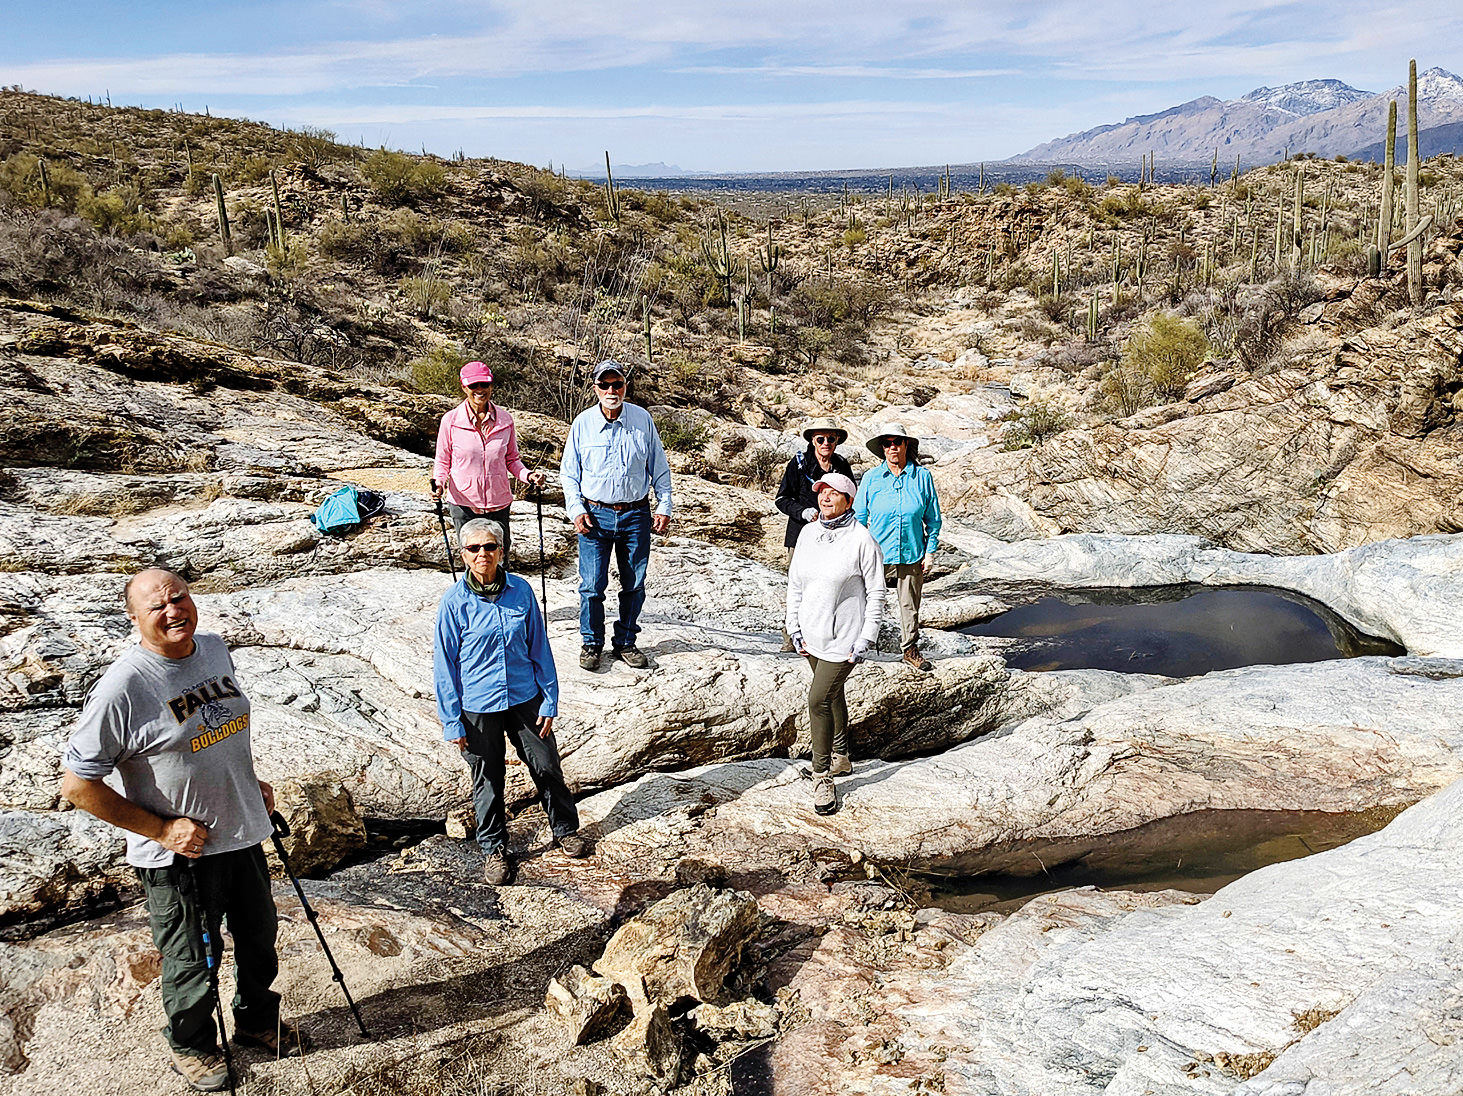 Hikers pause by Little Horse Tank pools. (Photo by Ruth Caldwell)